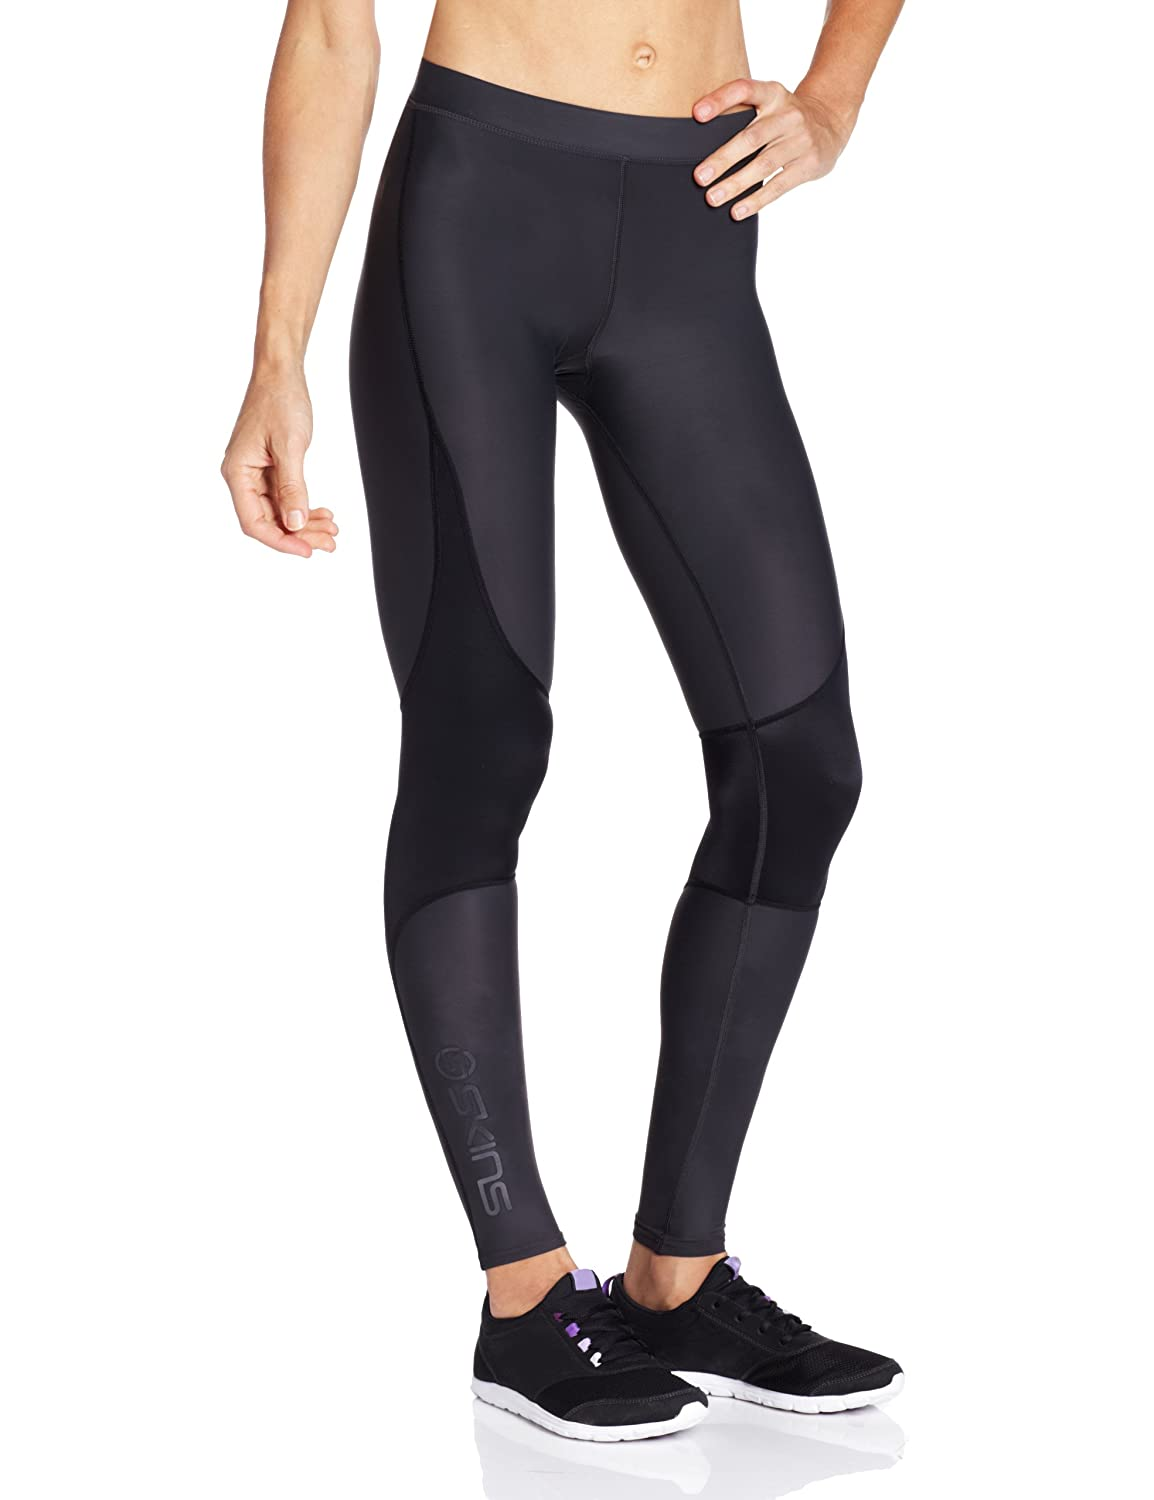 SKINS Women's RY400 Recovery Long Tights SKIOZ